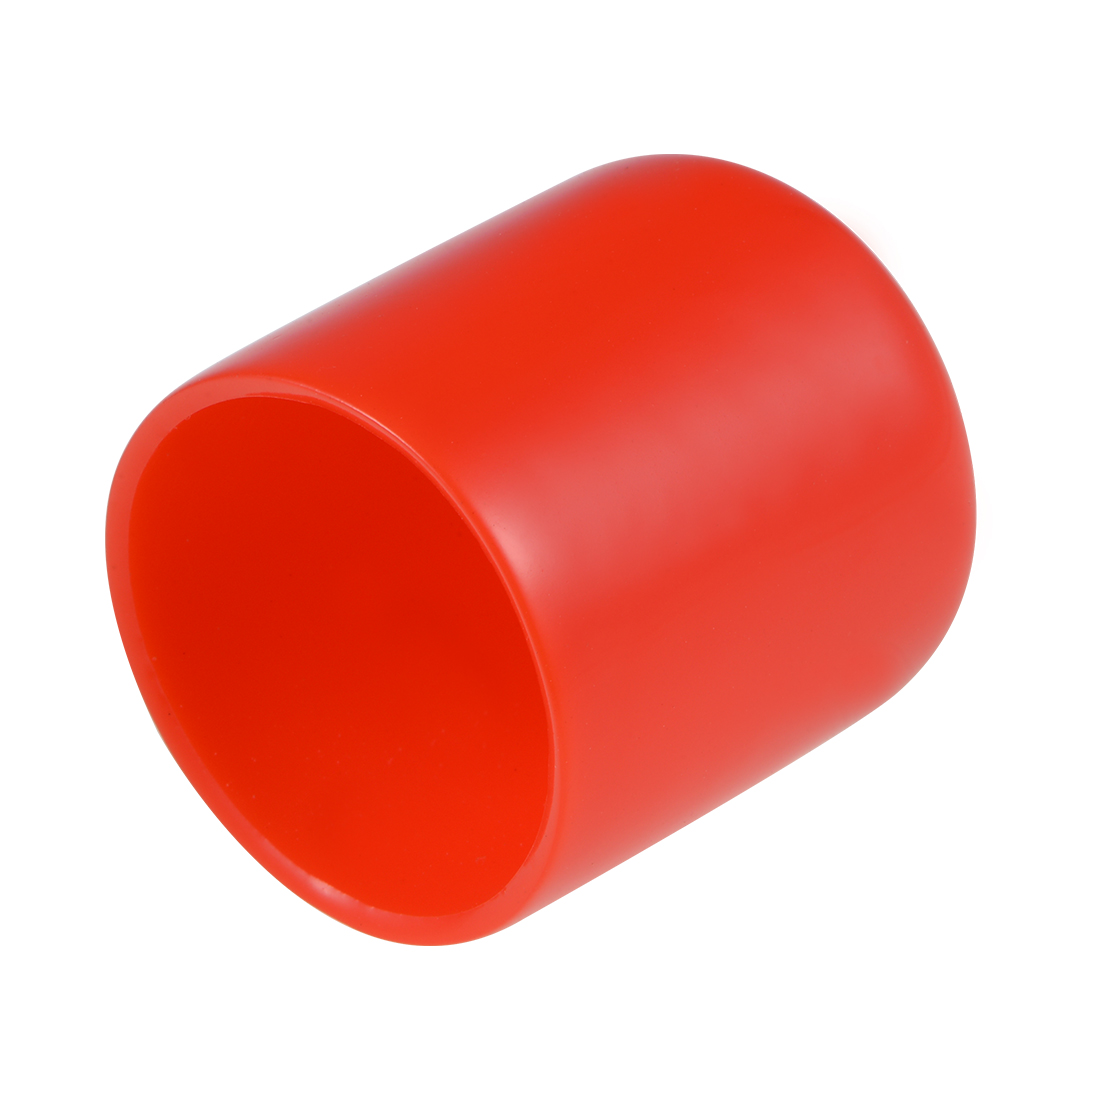 Screw Thread Protector, 27mm ID Round End Cap Cover Red Tube Caps 10pcs